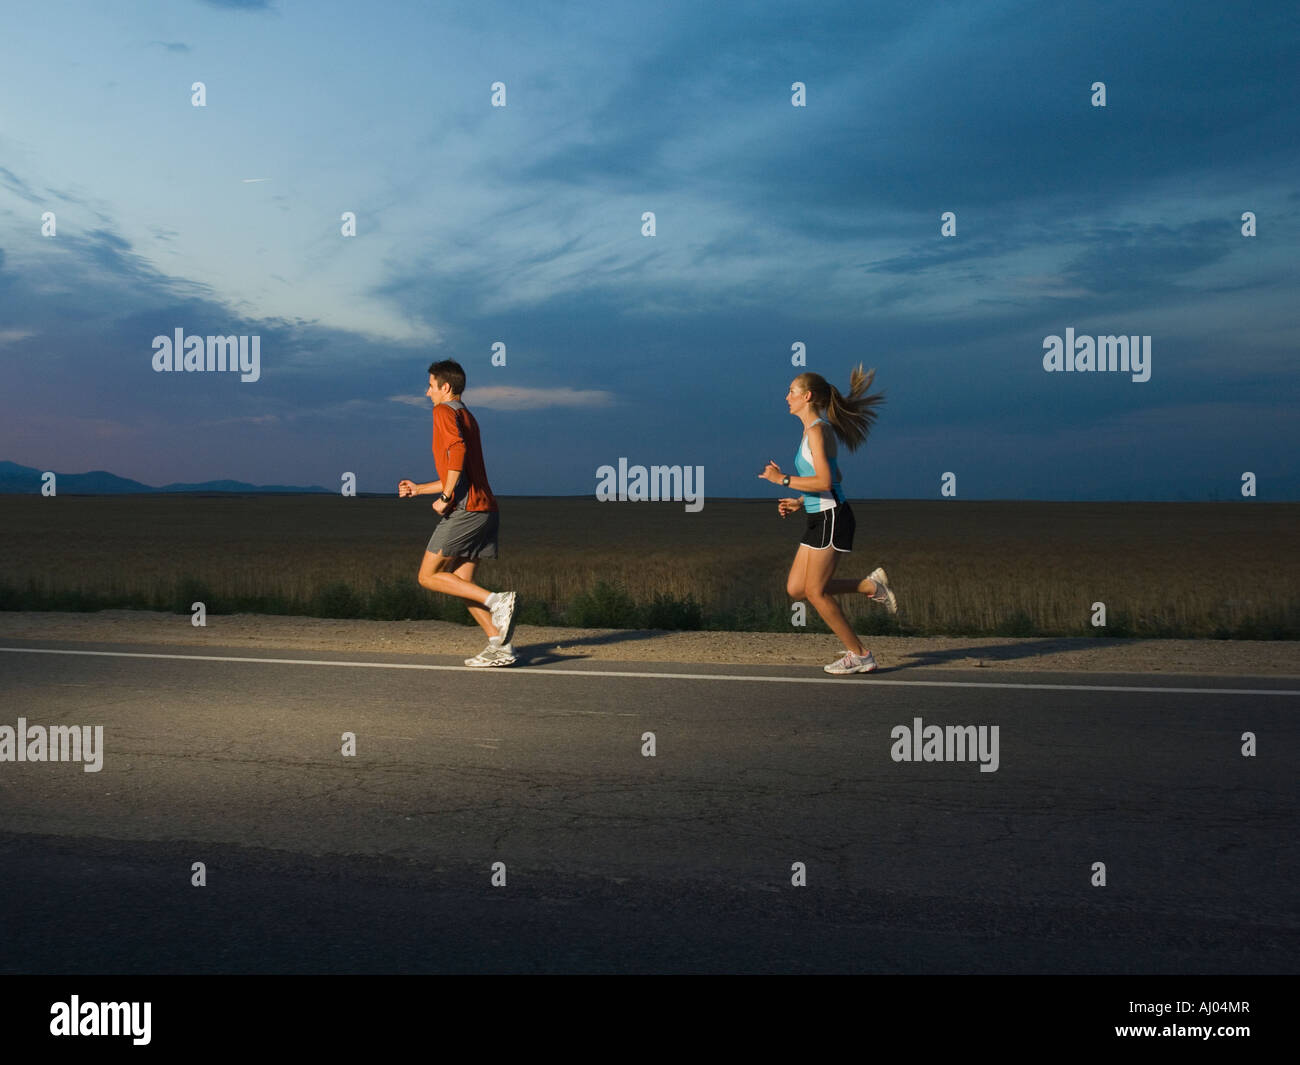 Couple in athletic gear running - Stock Image